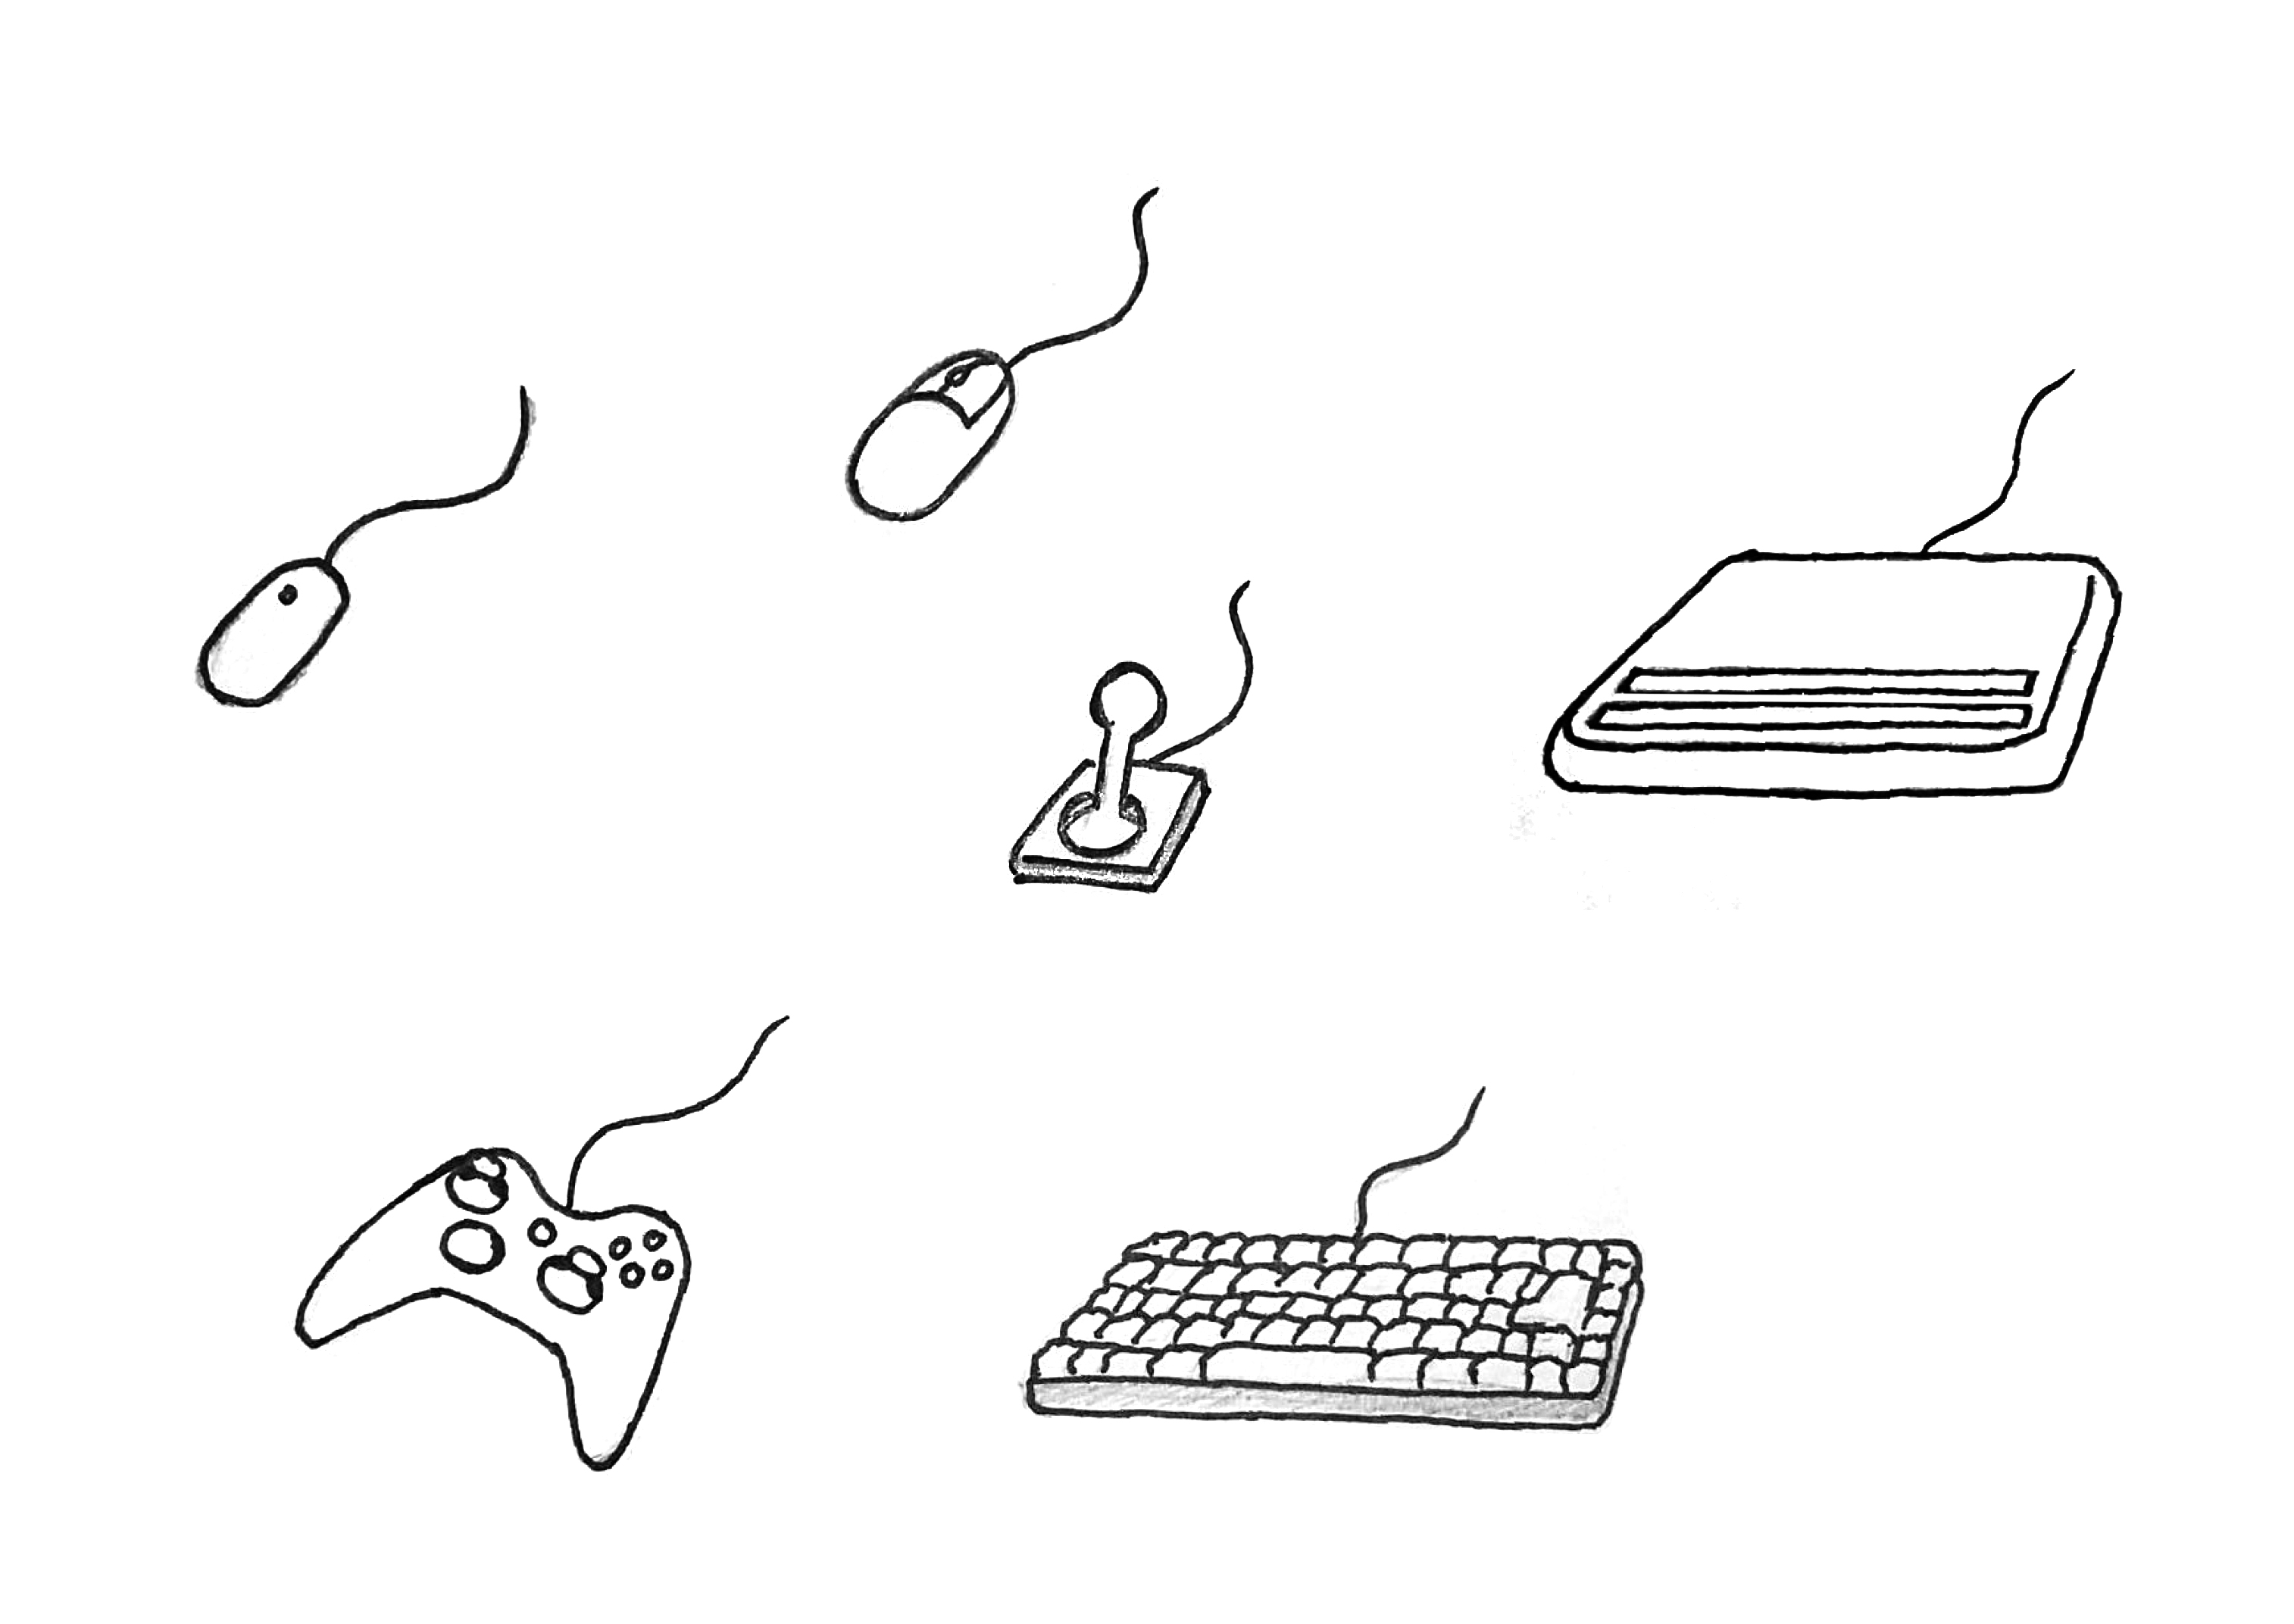 Illustration: 2 different mouses, a keyboard, a refreshable braille display, a gamepad and a joystick.